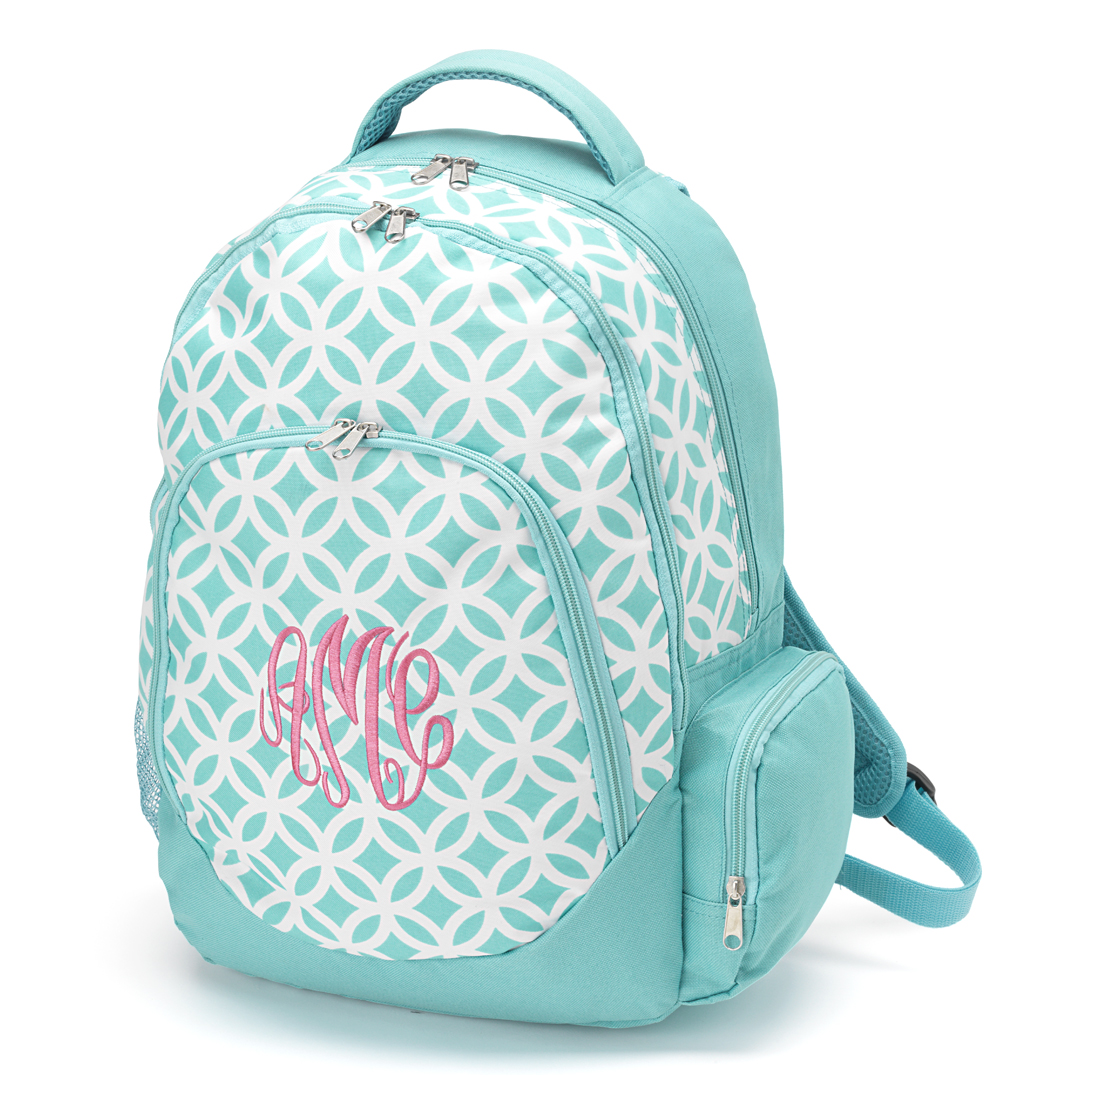 Cute Girly Backpacks 7rPz3dc0